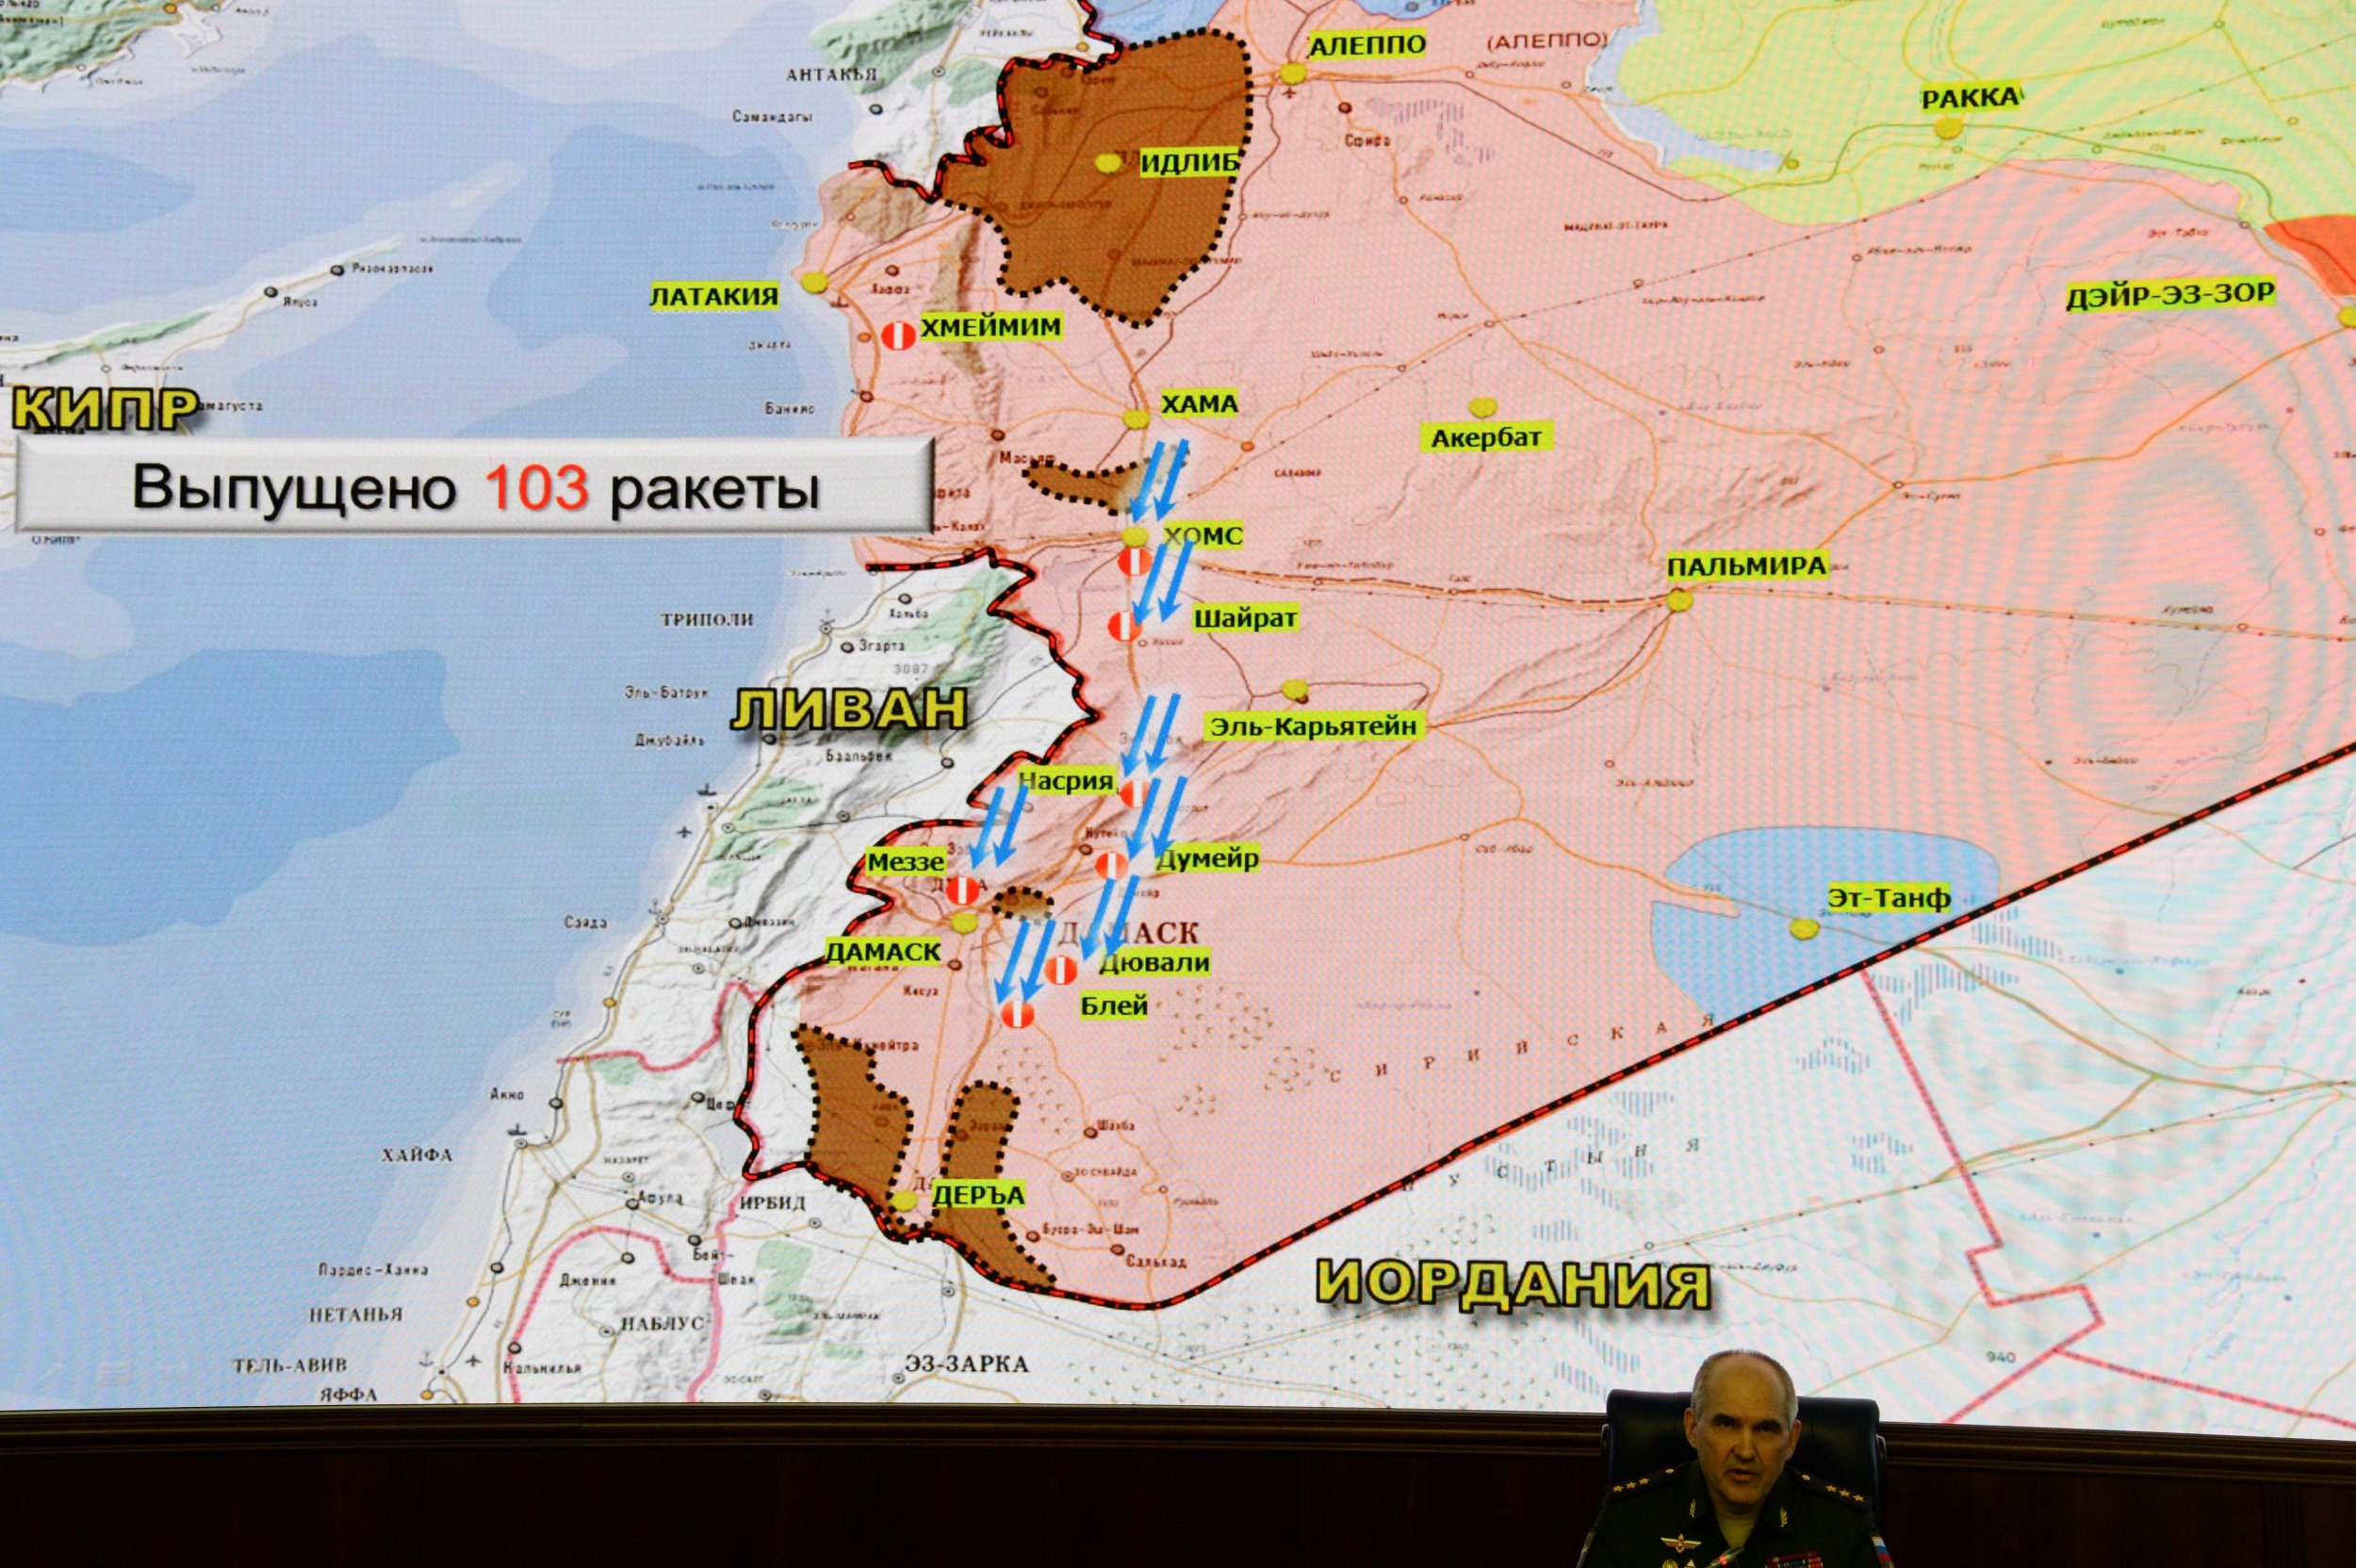 Russia says it told U.S. where in Syria it was allowed to bomb